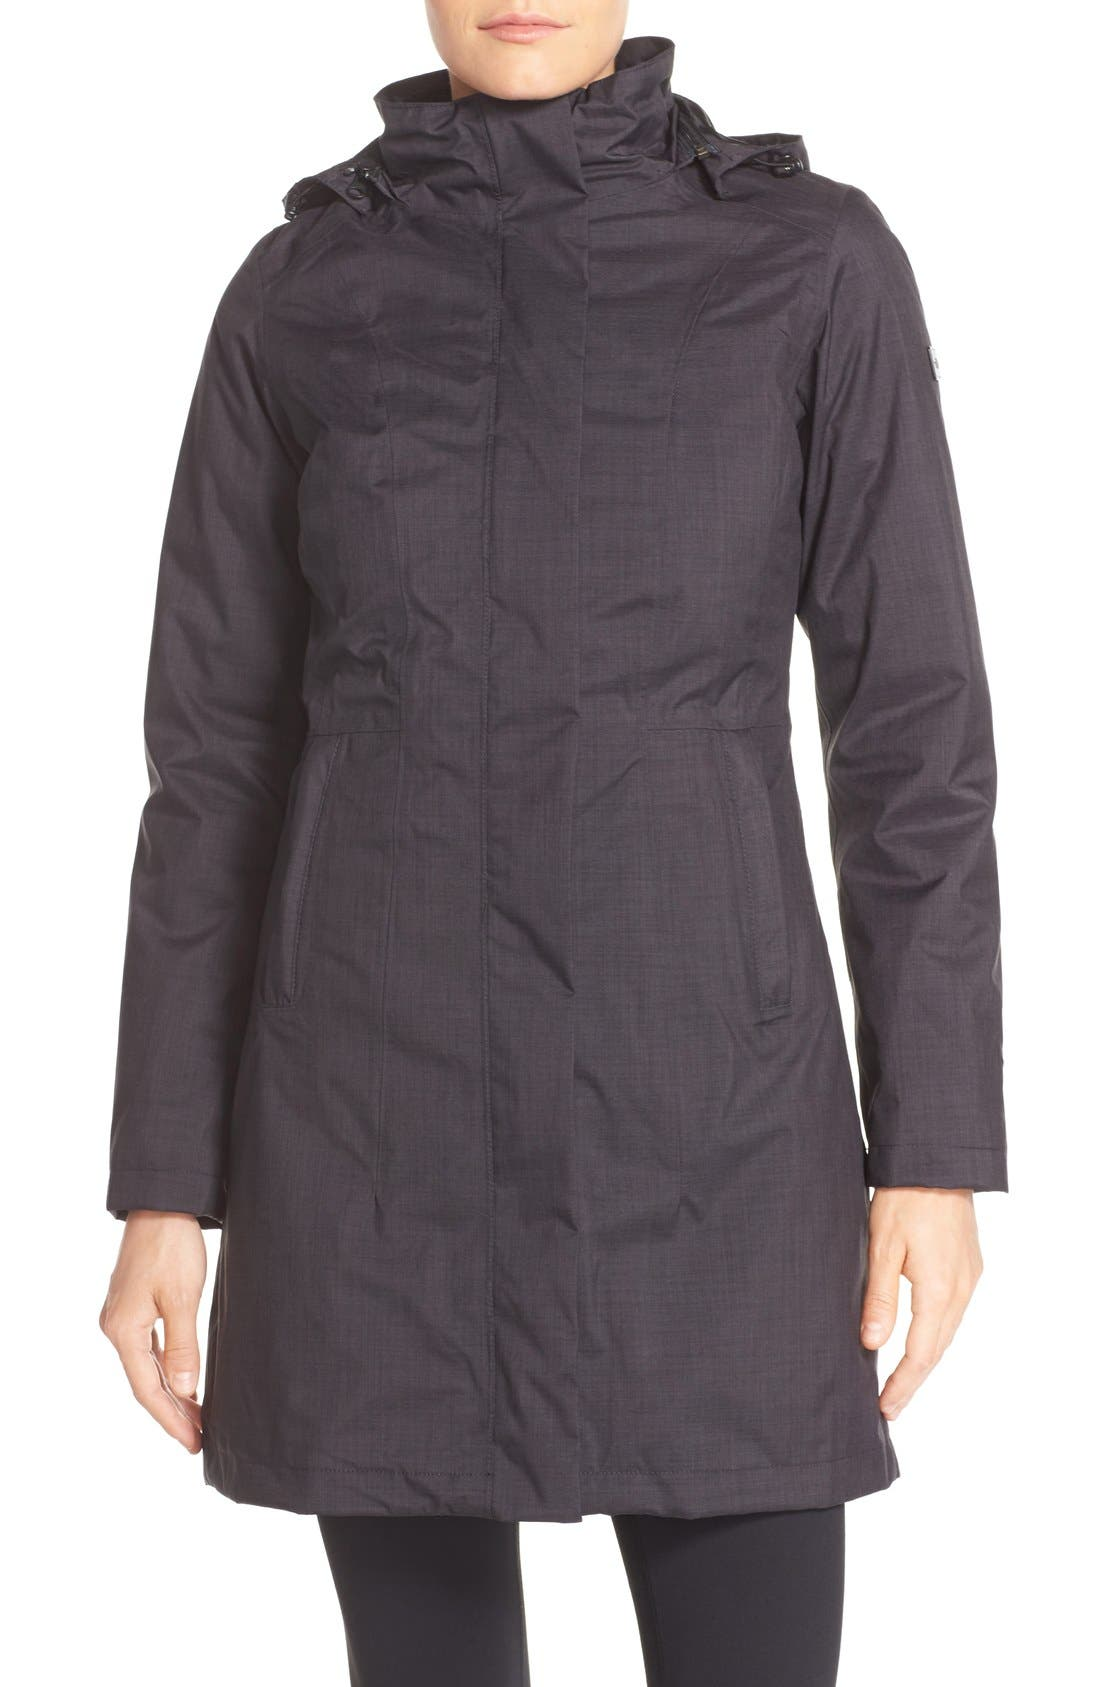 Main Image - The North Face 'Zola' 3-in-1 TriClimate® Waterproof Jacket